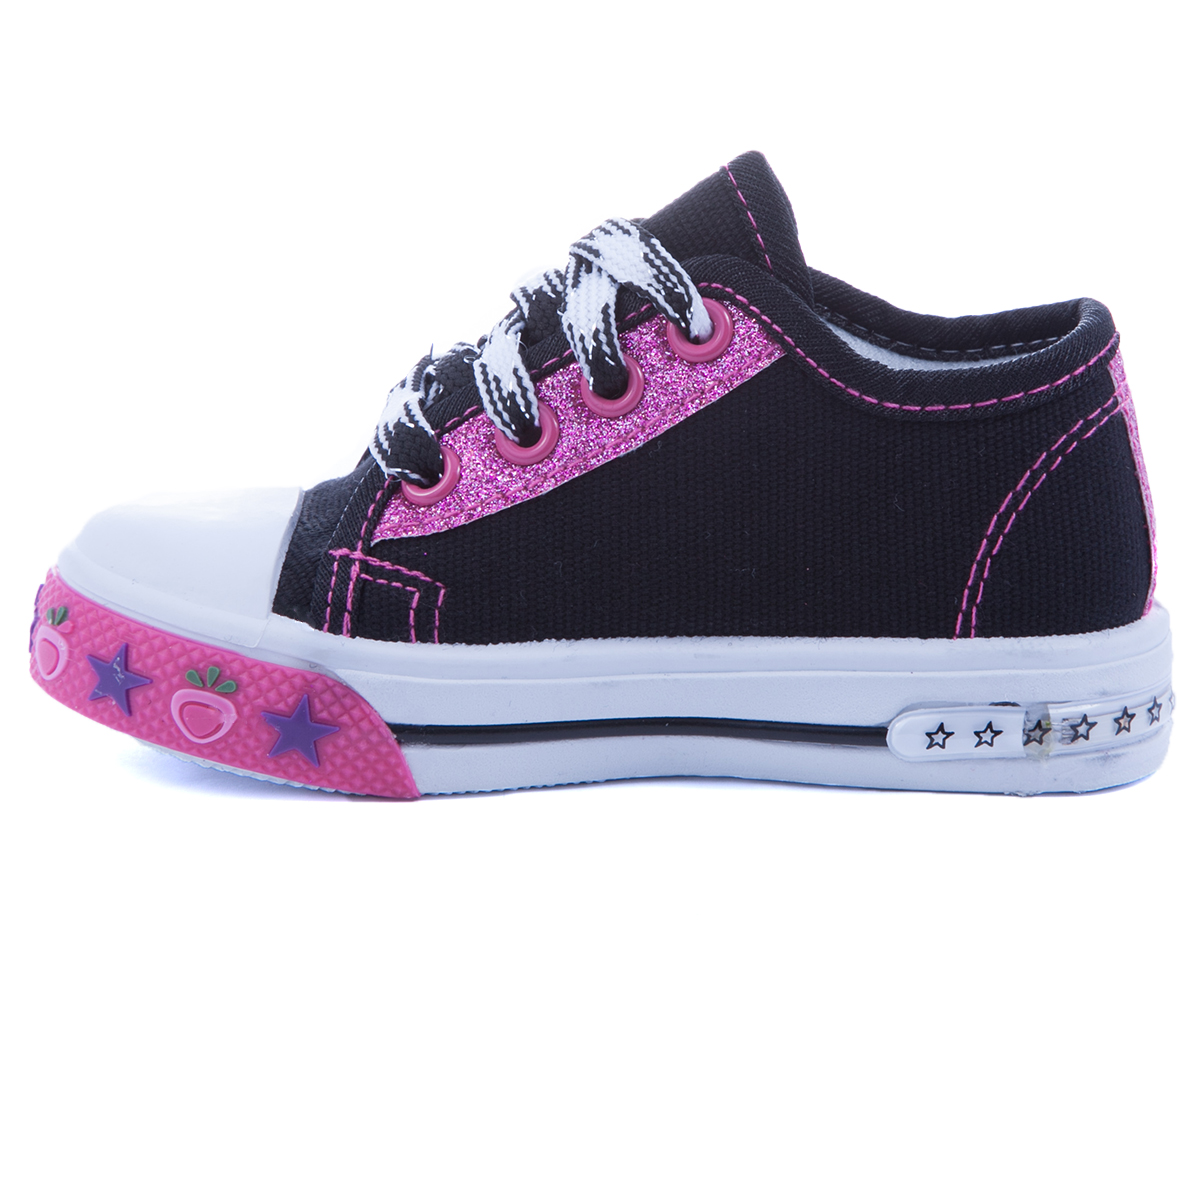 toddler canvas tennis sneakers low top shoes lace up baby